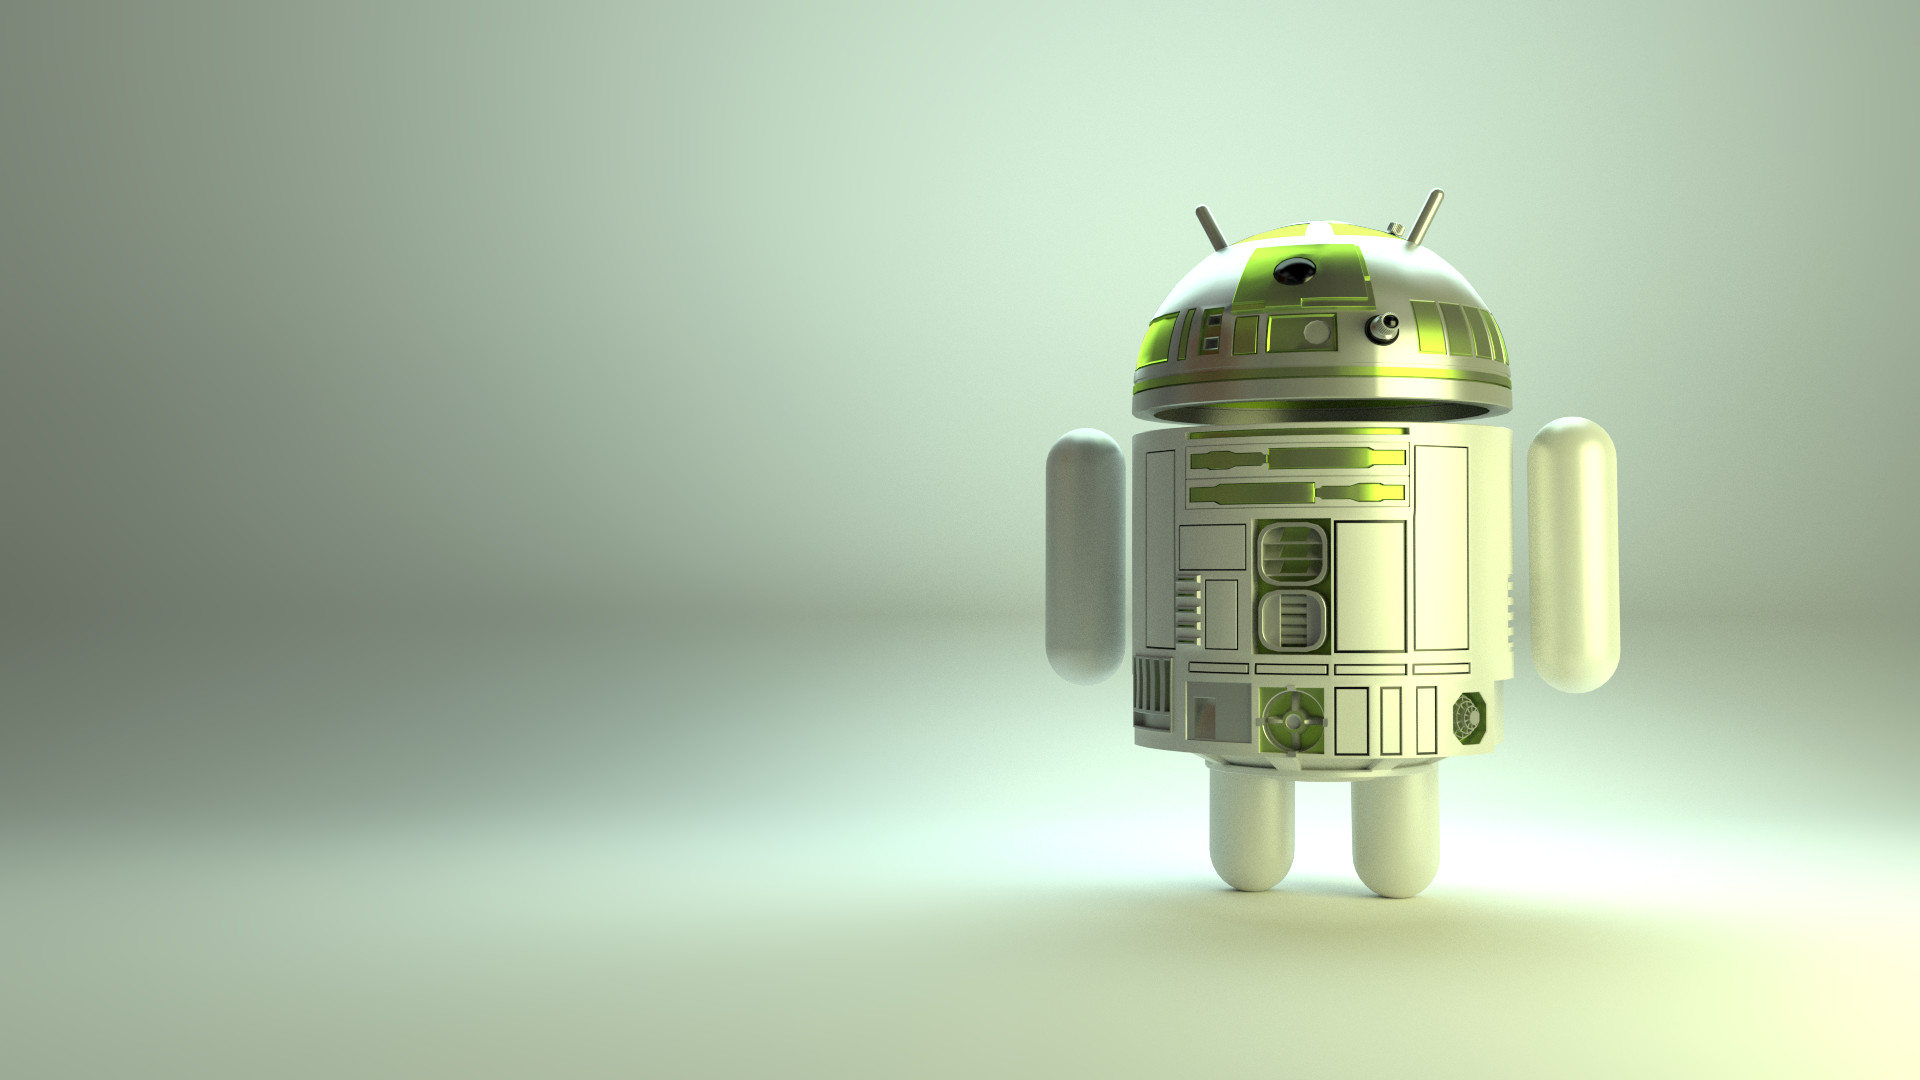 … Android Robot, R2-D2 Style by ILikePixels